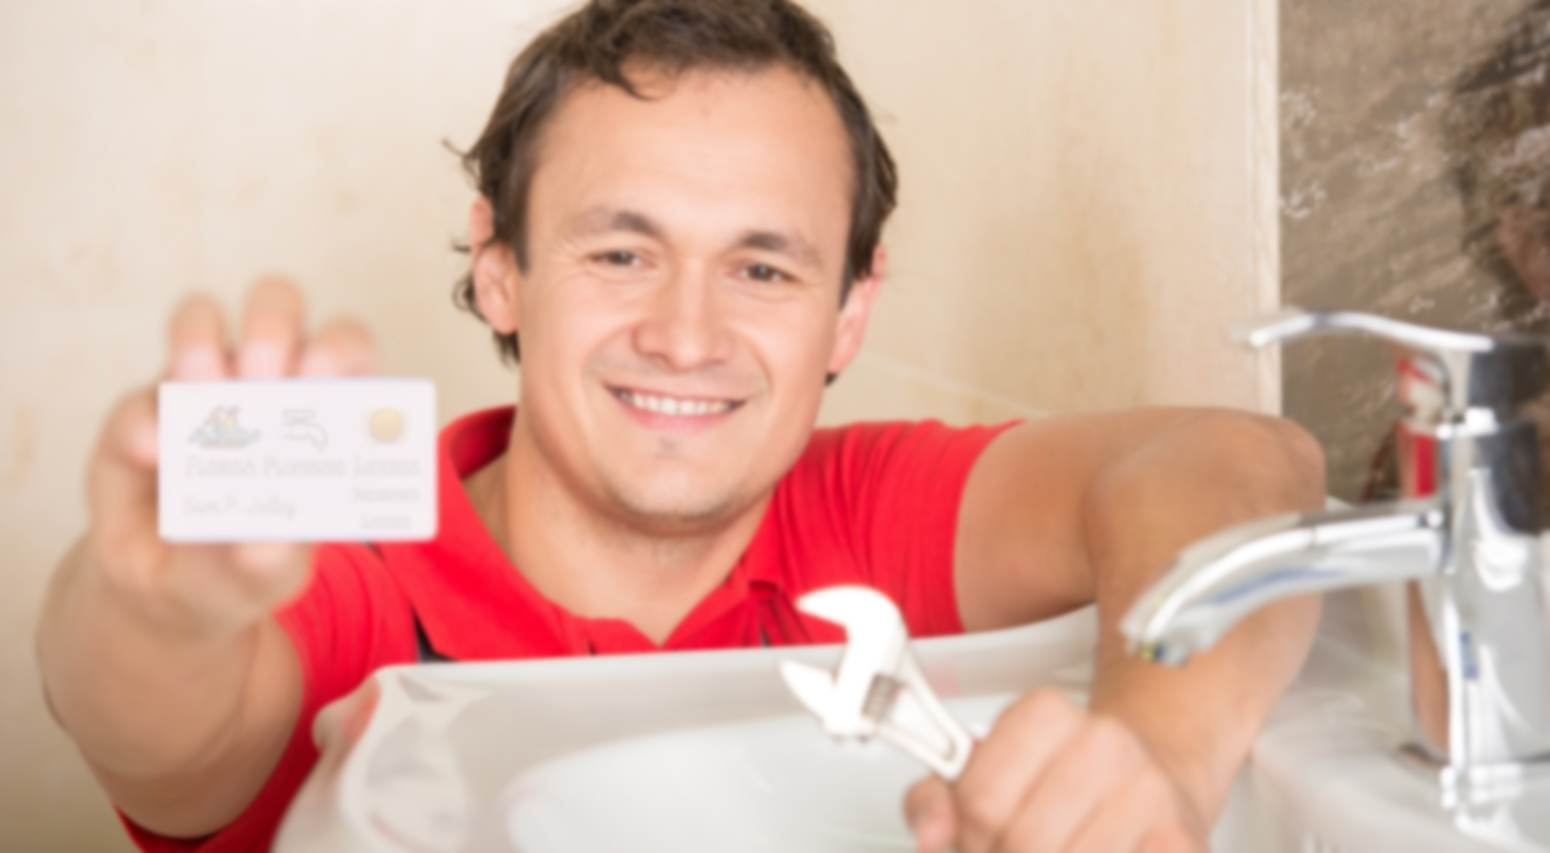 licensed plumbers in Pompano Beach